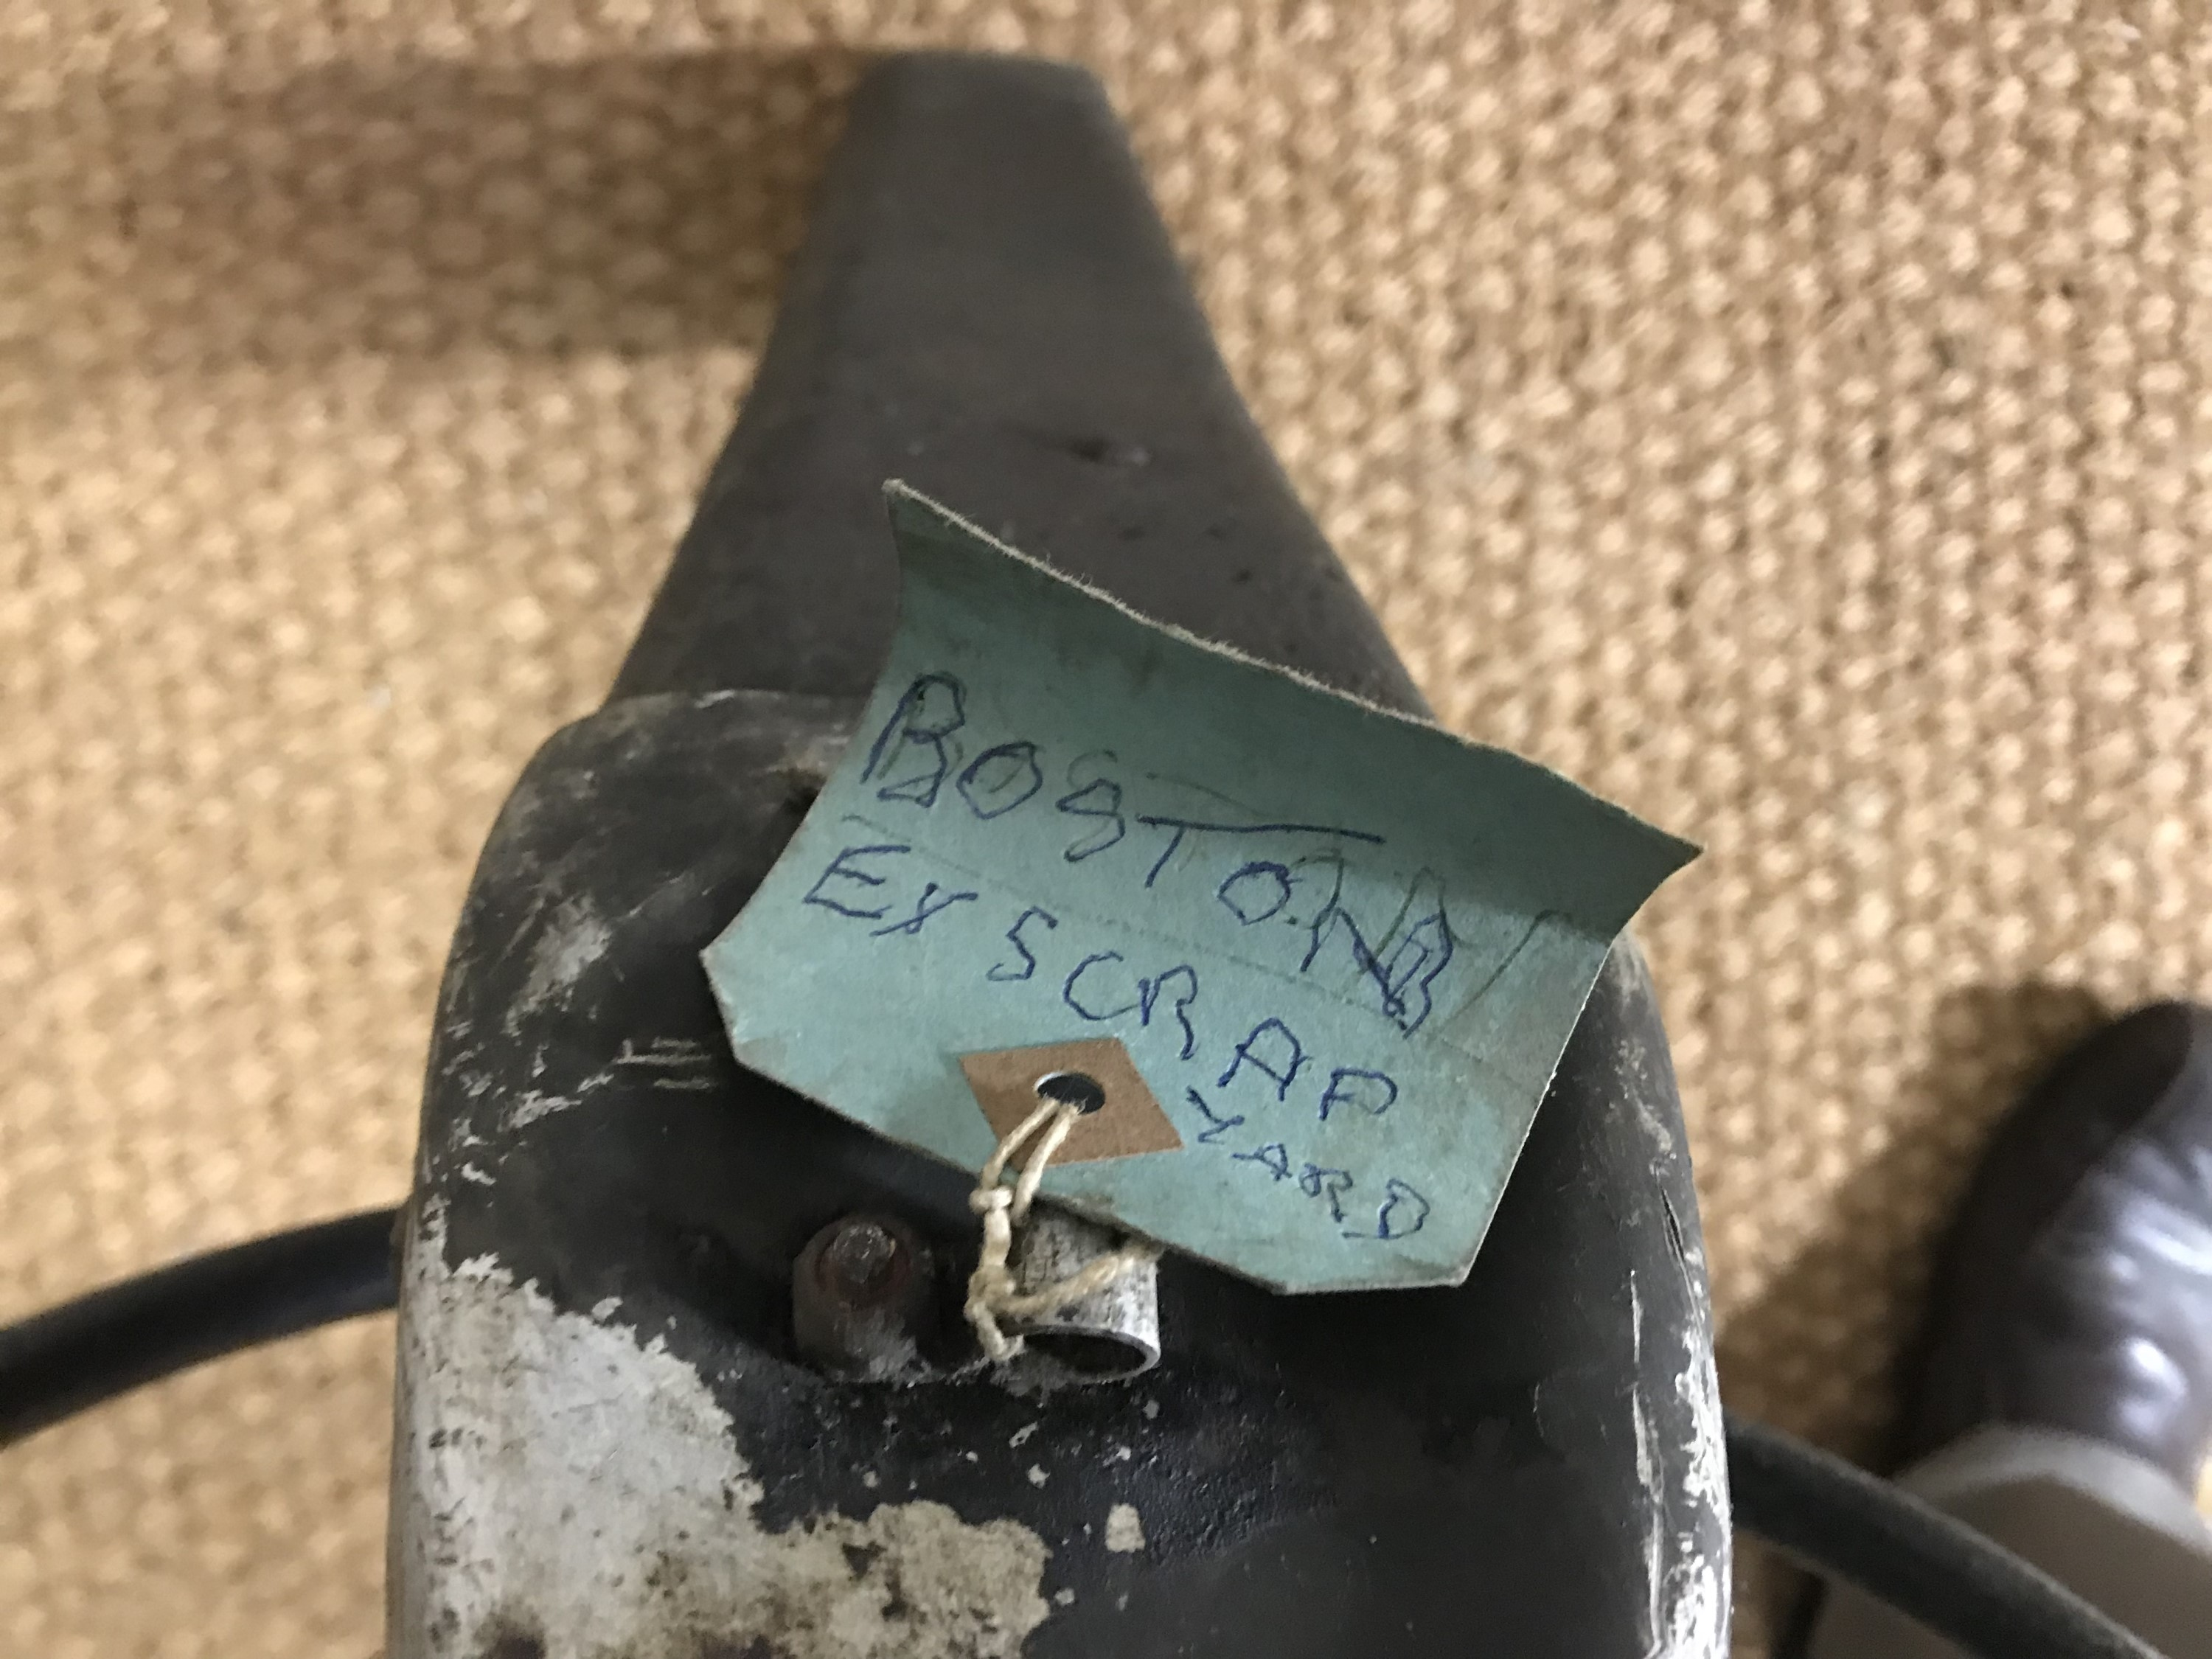 Lot 689 - An aircraft control column and wheel with label suggesting it could be that of a Boston aircraft